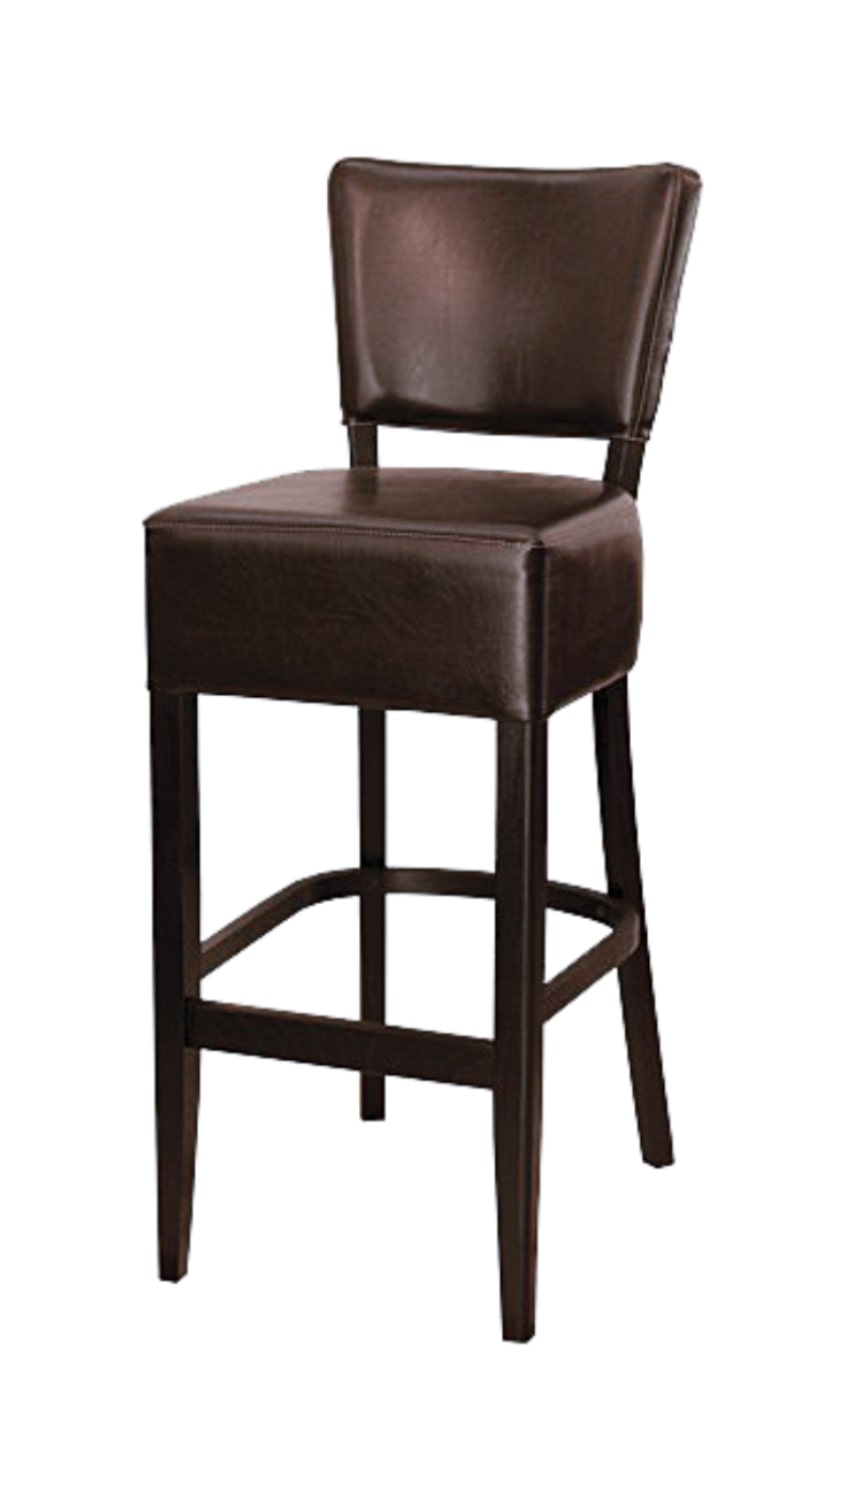 Upholstered Solid Wood barstool made of Beech - 1303B